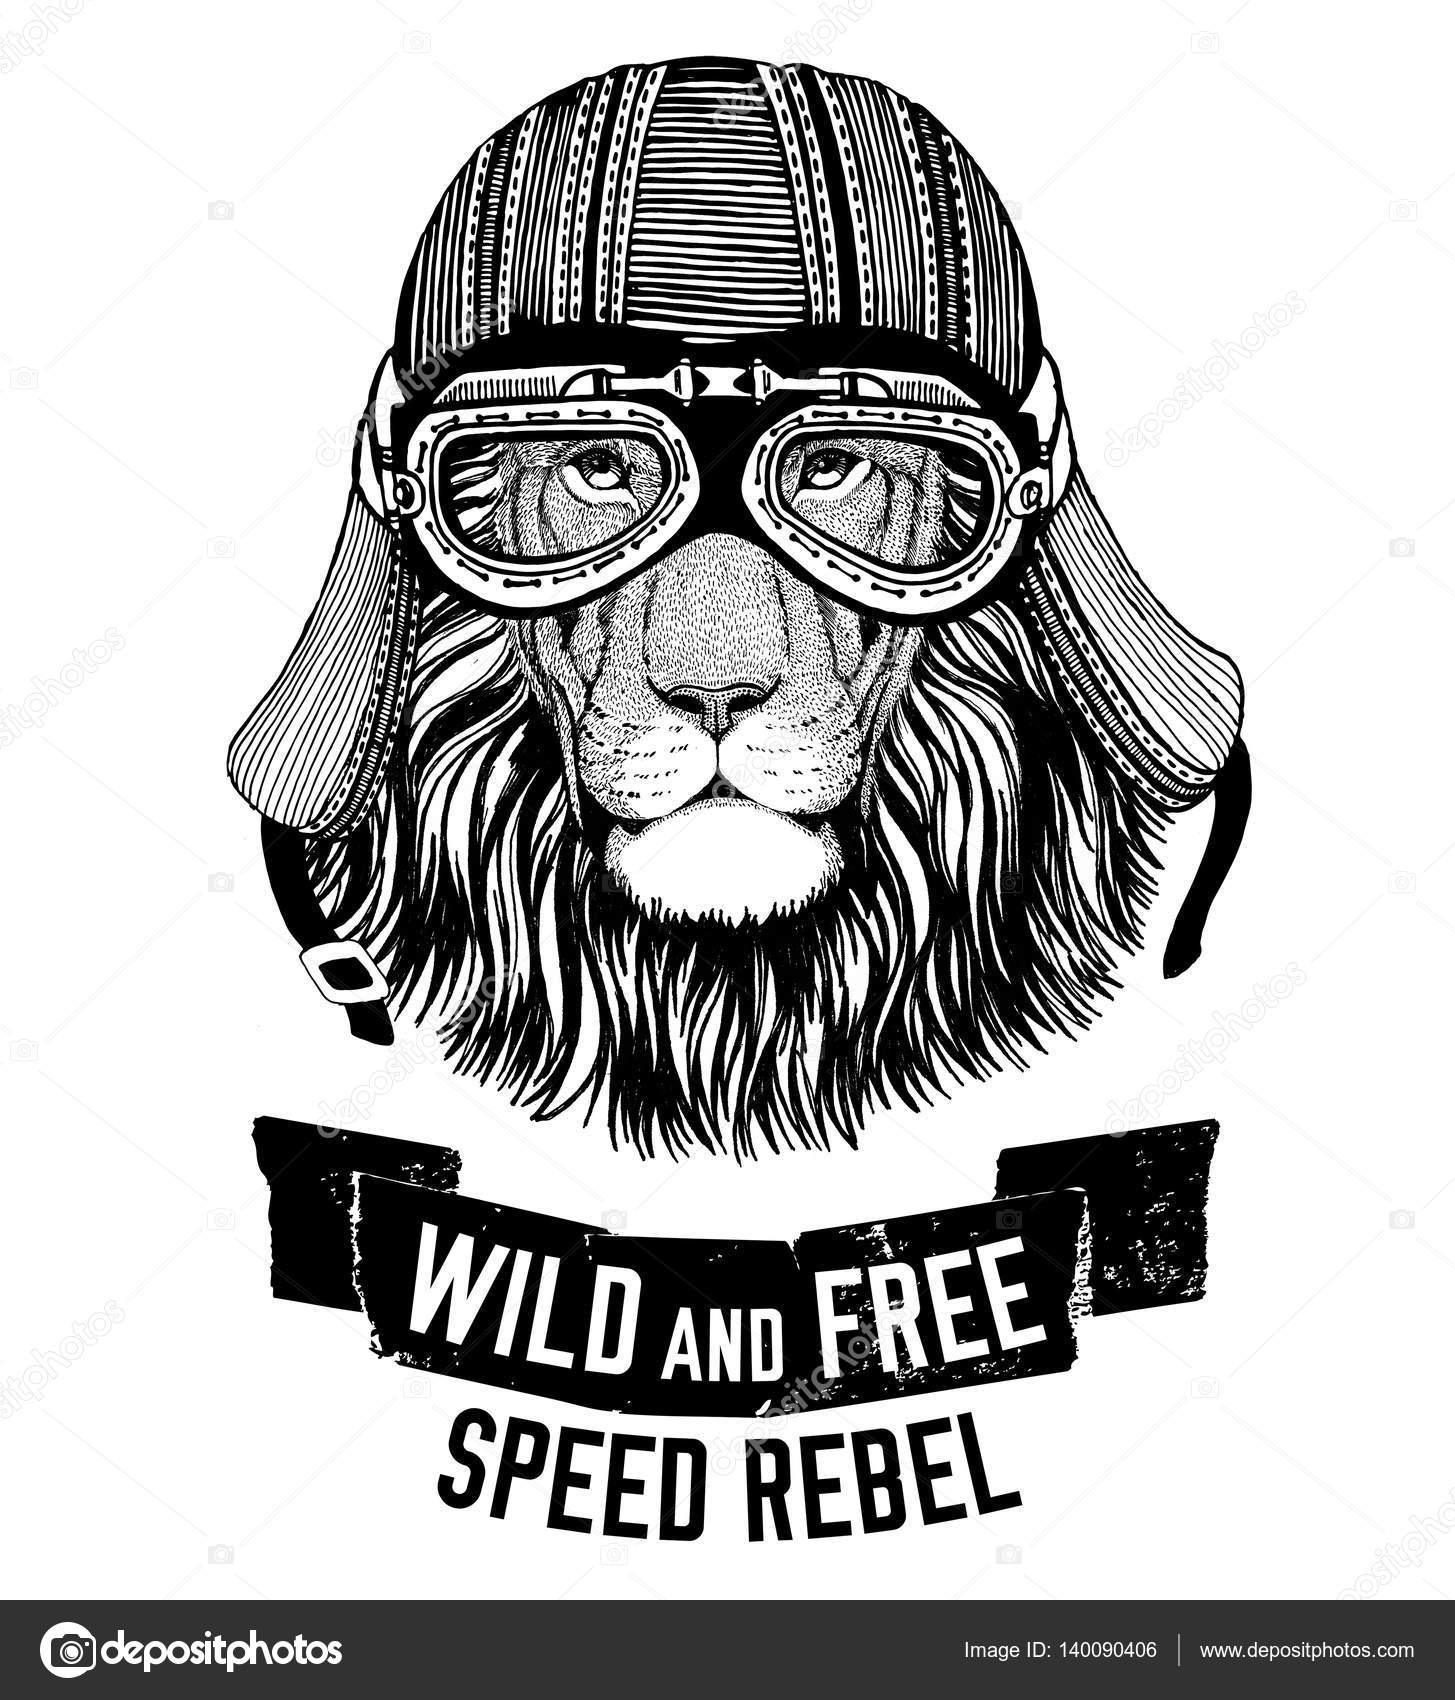 Design t shirt free - Wild Tiger Wild Cat Be Wild And Free T Shirt Emblem Template Biker Motorcycle Design Hand Drawn Image Photo By Helen_f